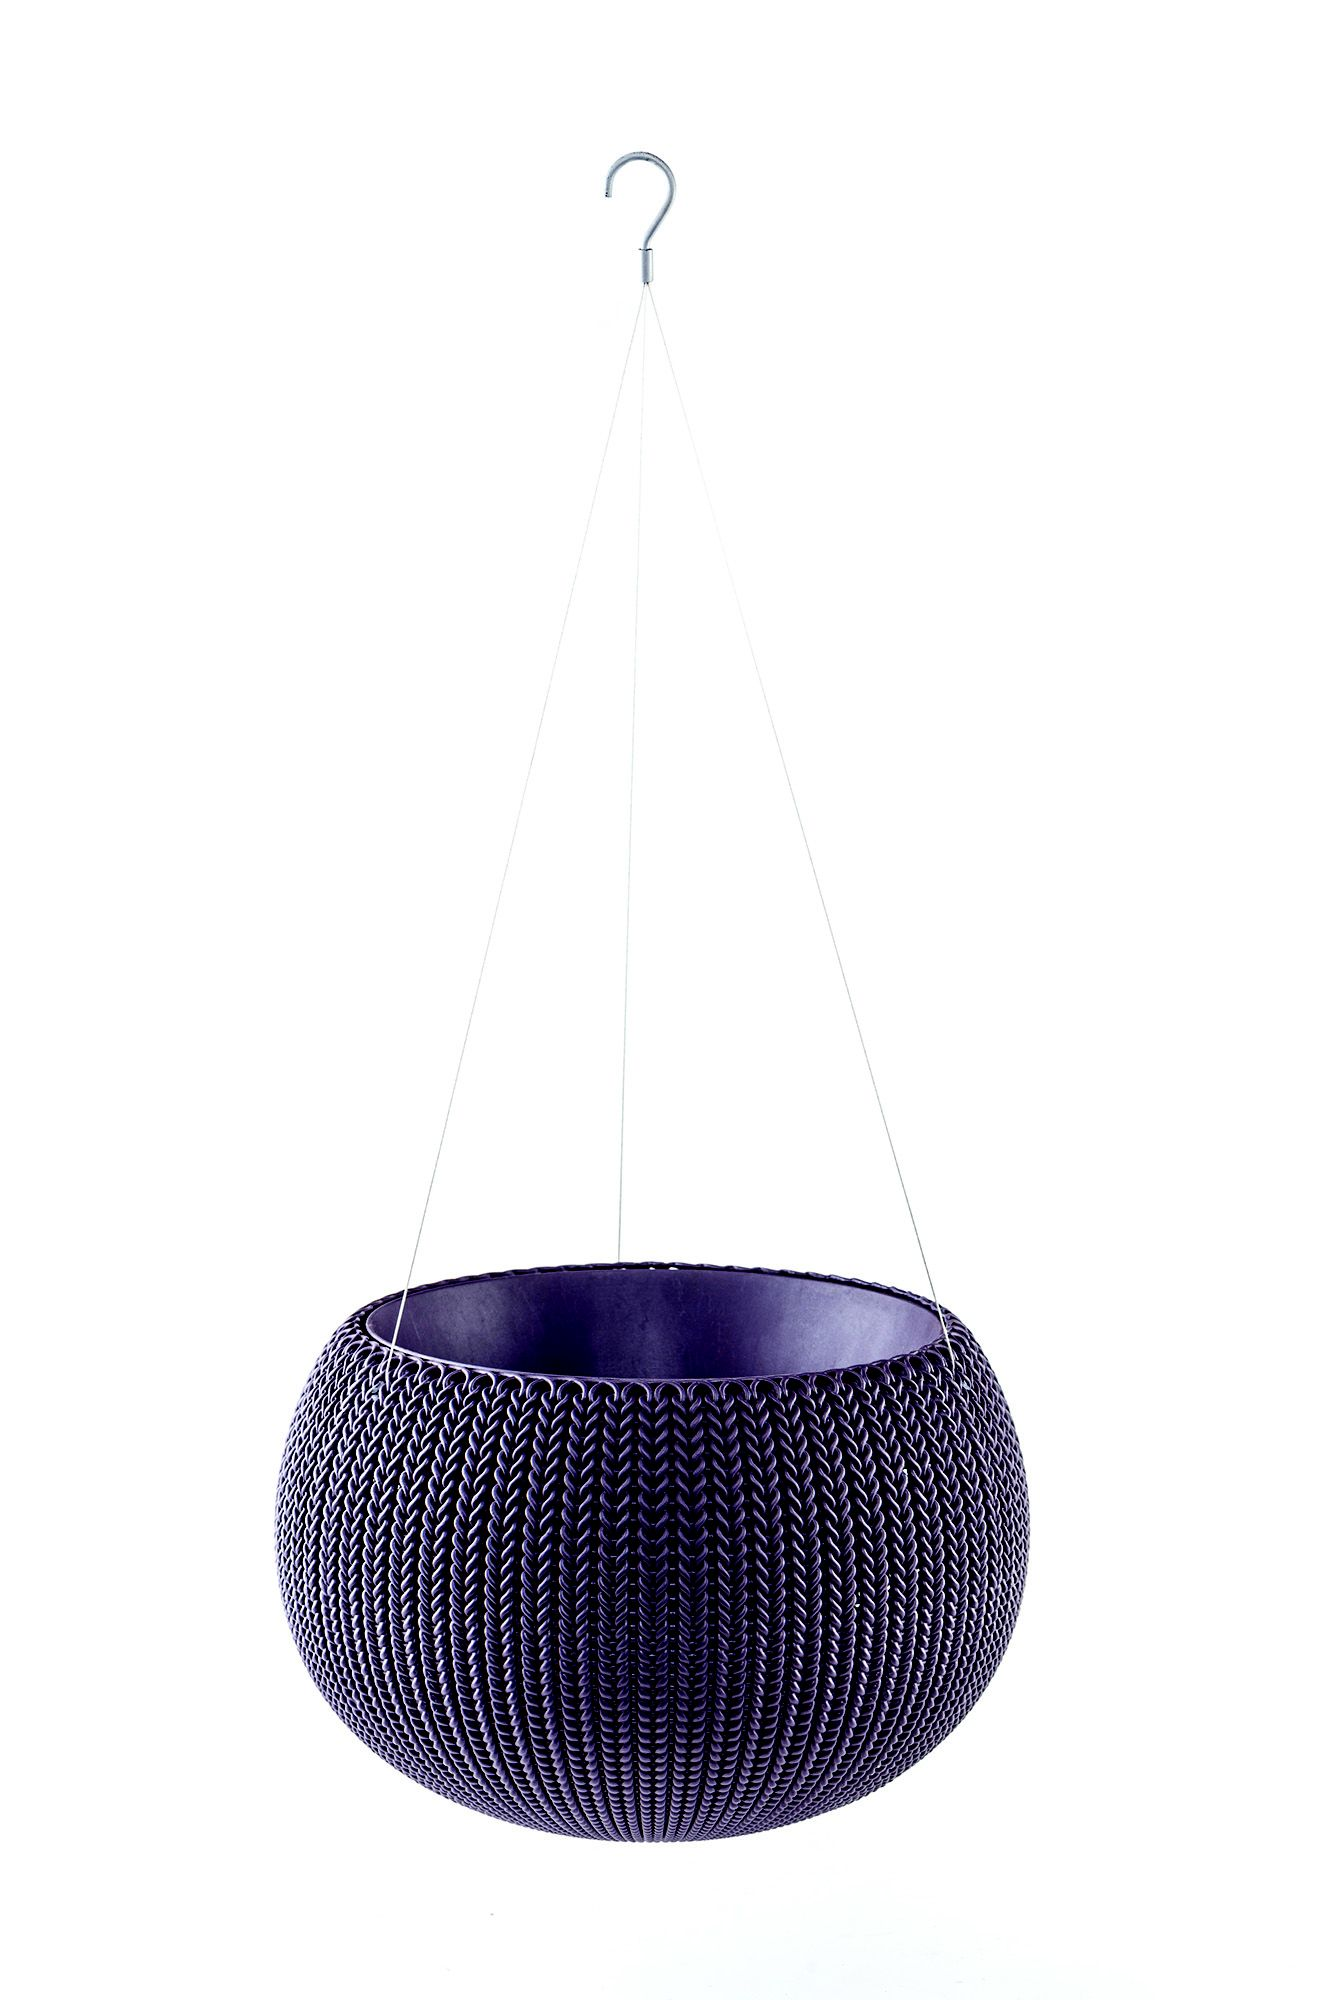 Keter Knitted Effect Purple Hanging Basket 355 6 Mm